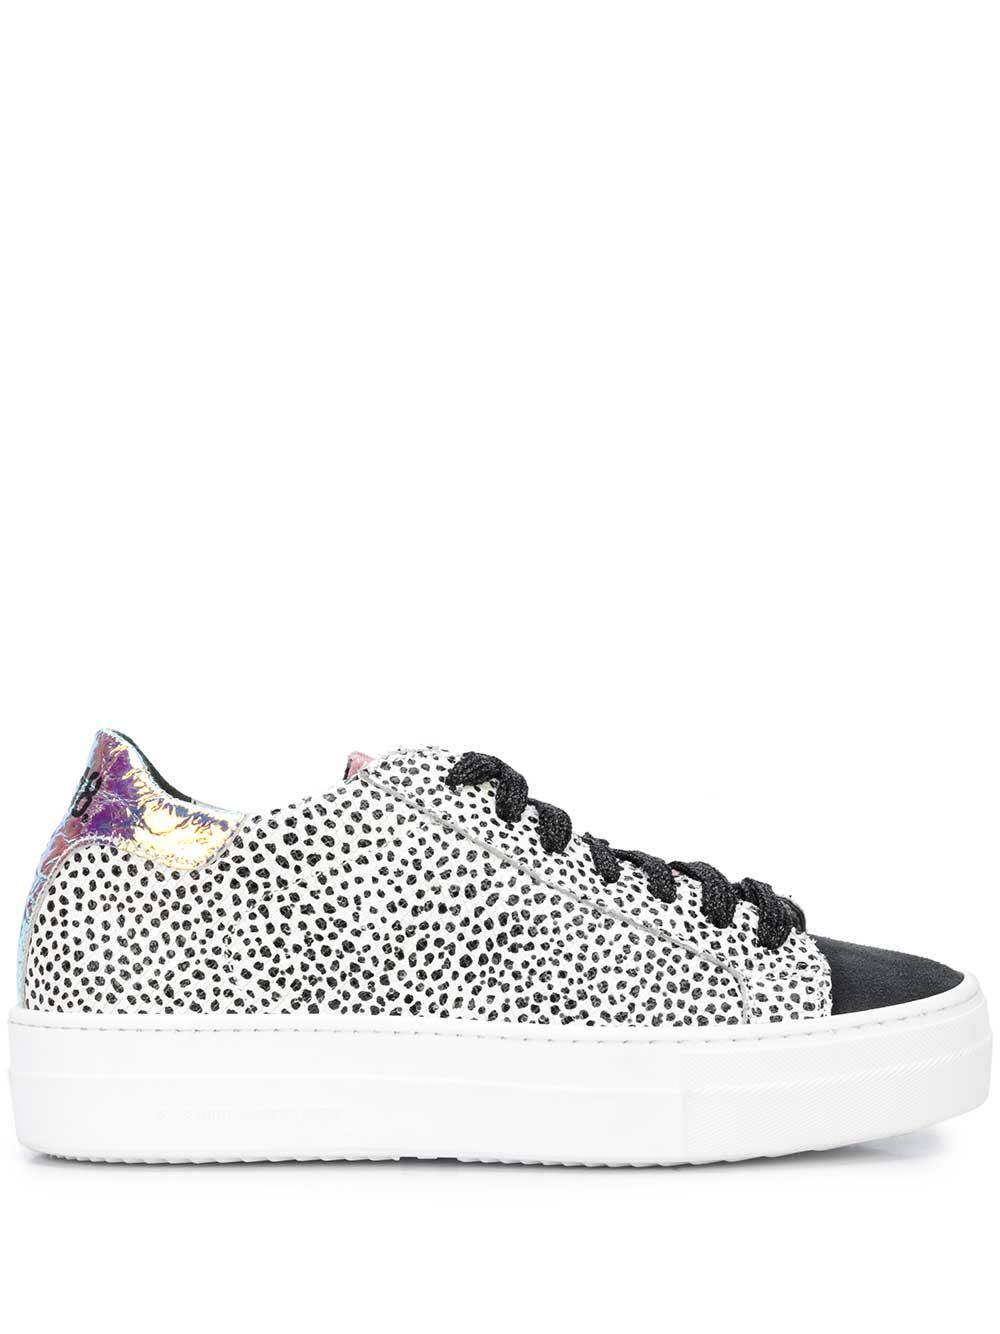 Animal Print Sneaker With Metallic Tab